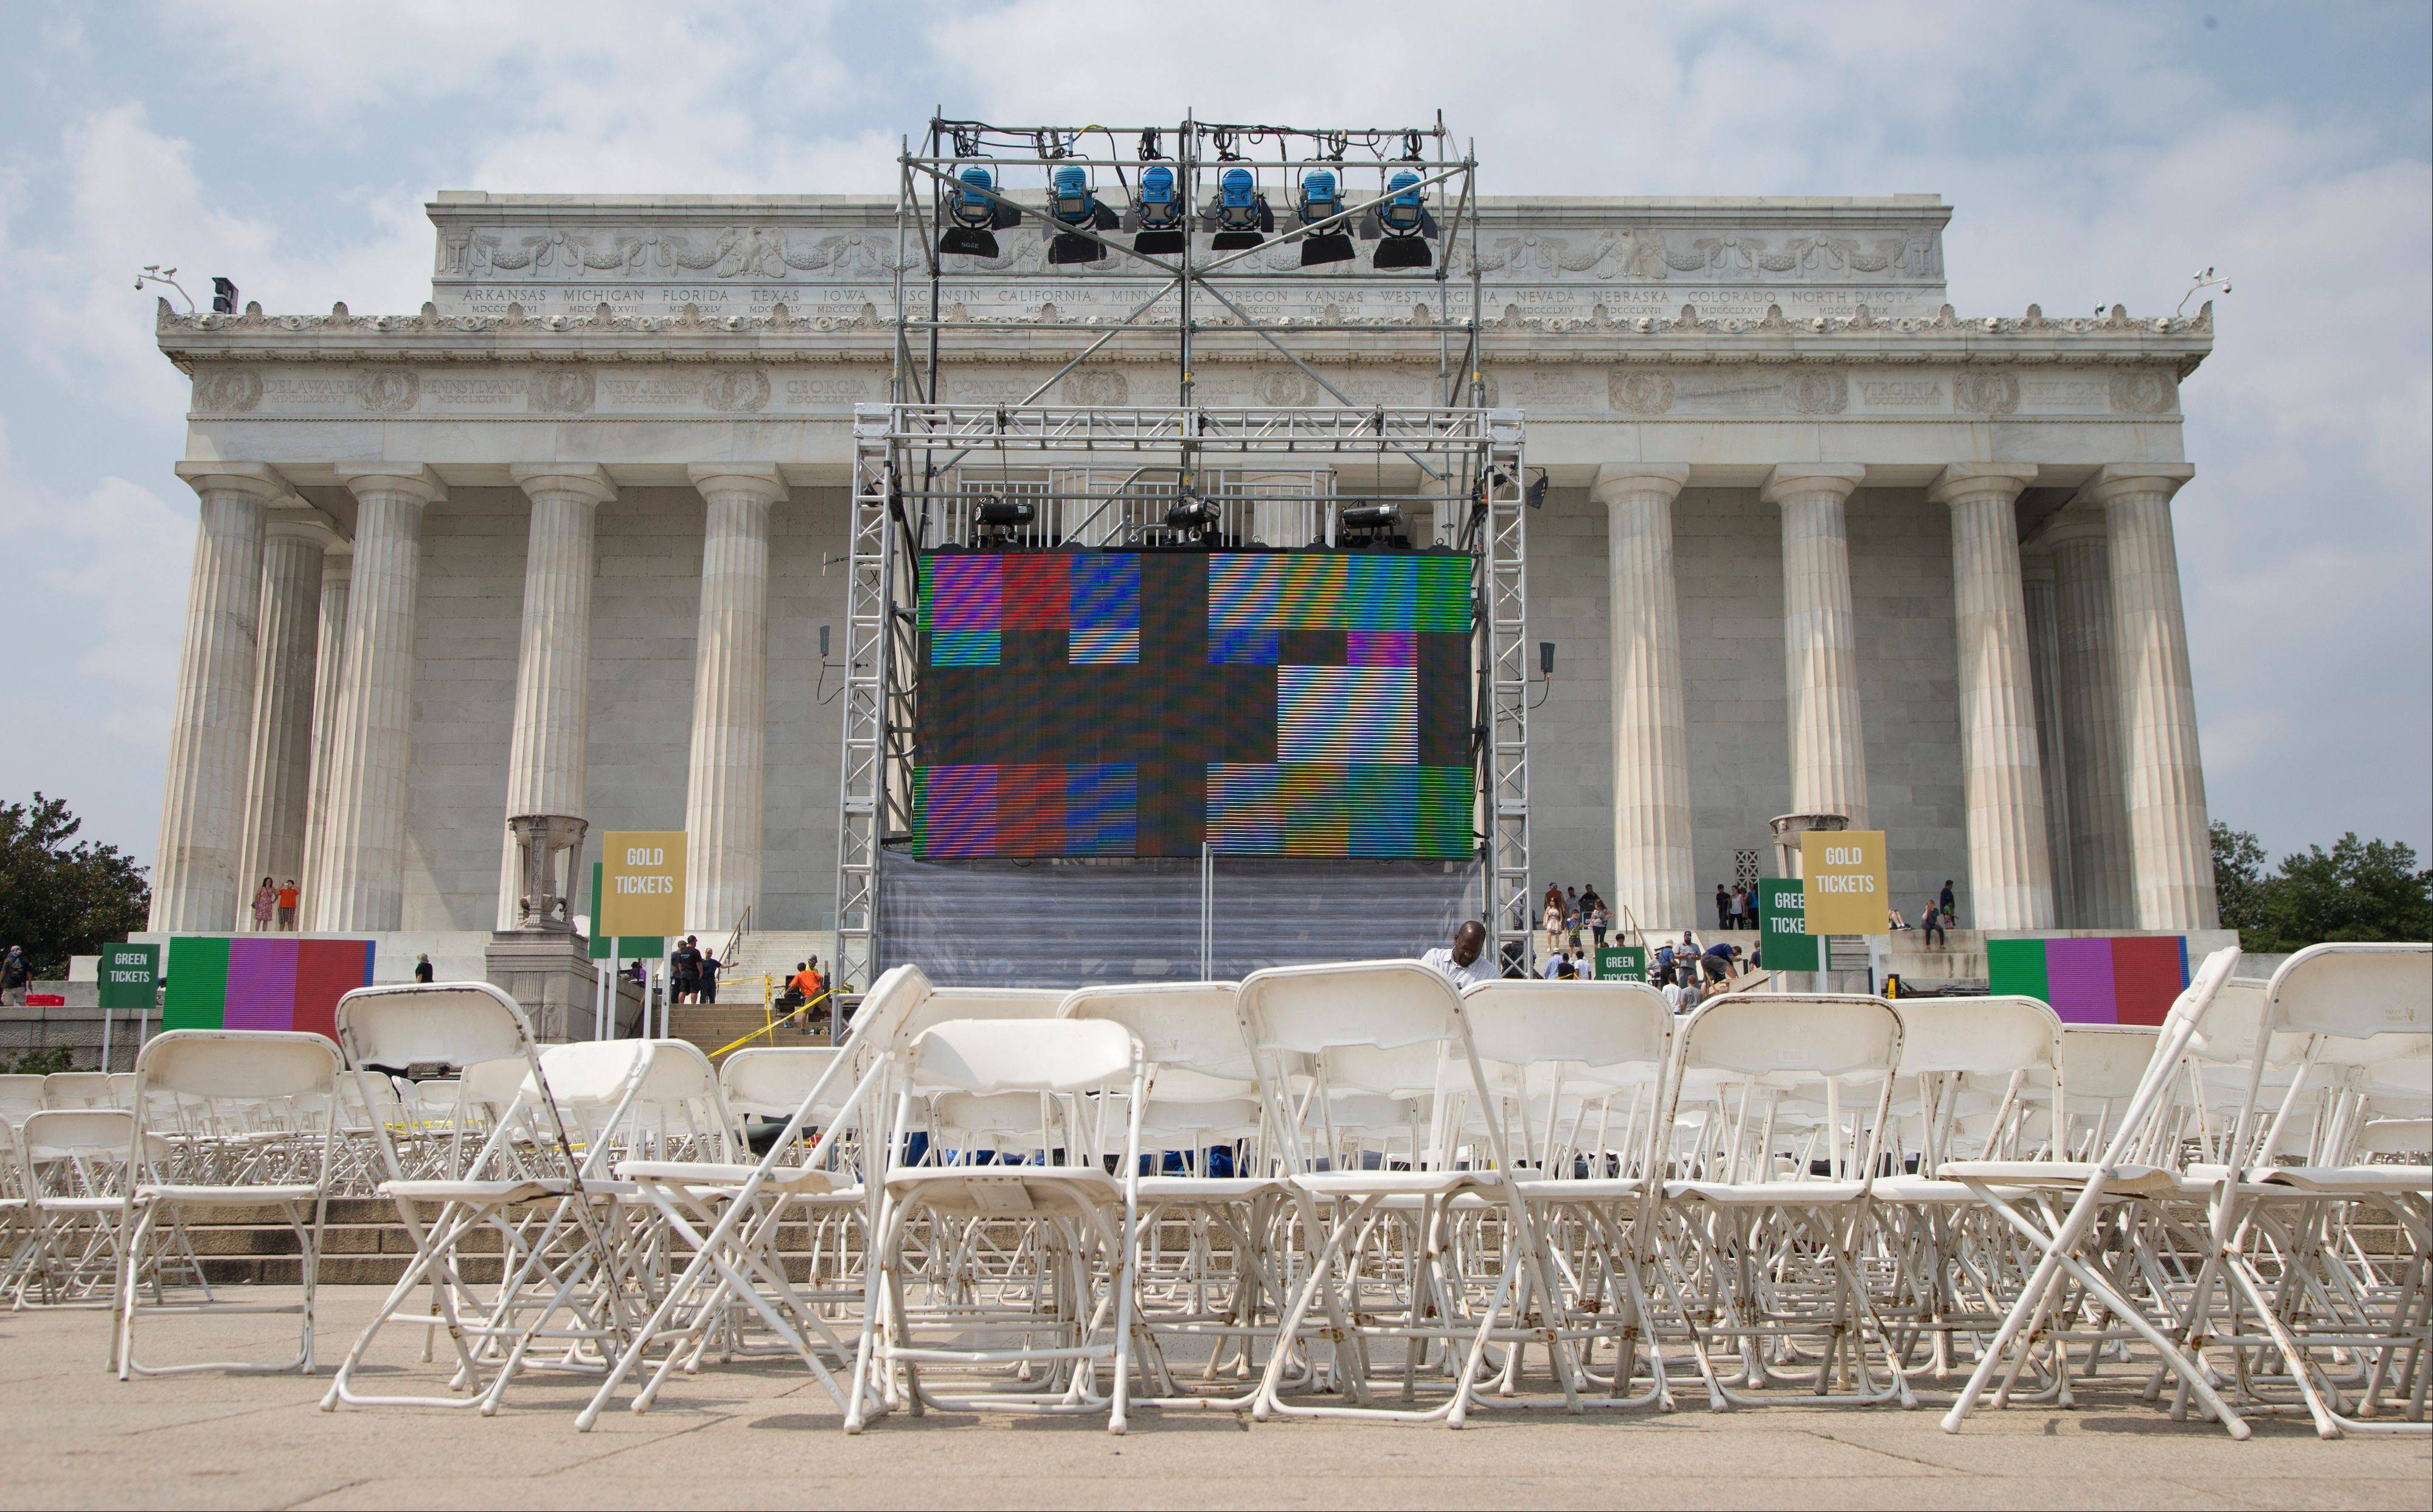 Chairs, metal risers and video screens are set up at the Lincoln Memorial in preparation for the 50th anniversary of the March On Washington celebrations.